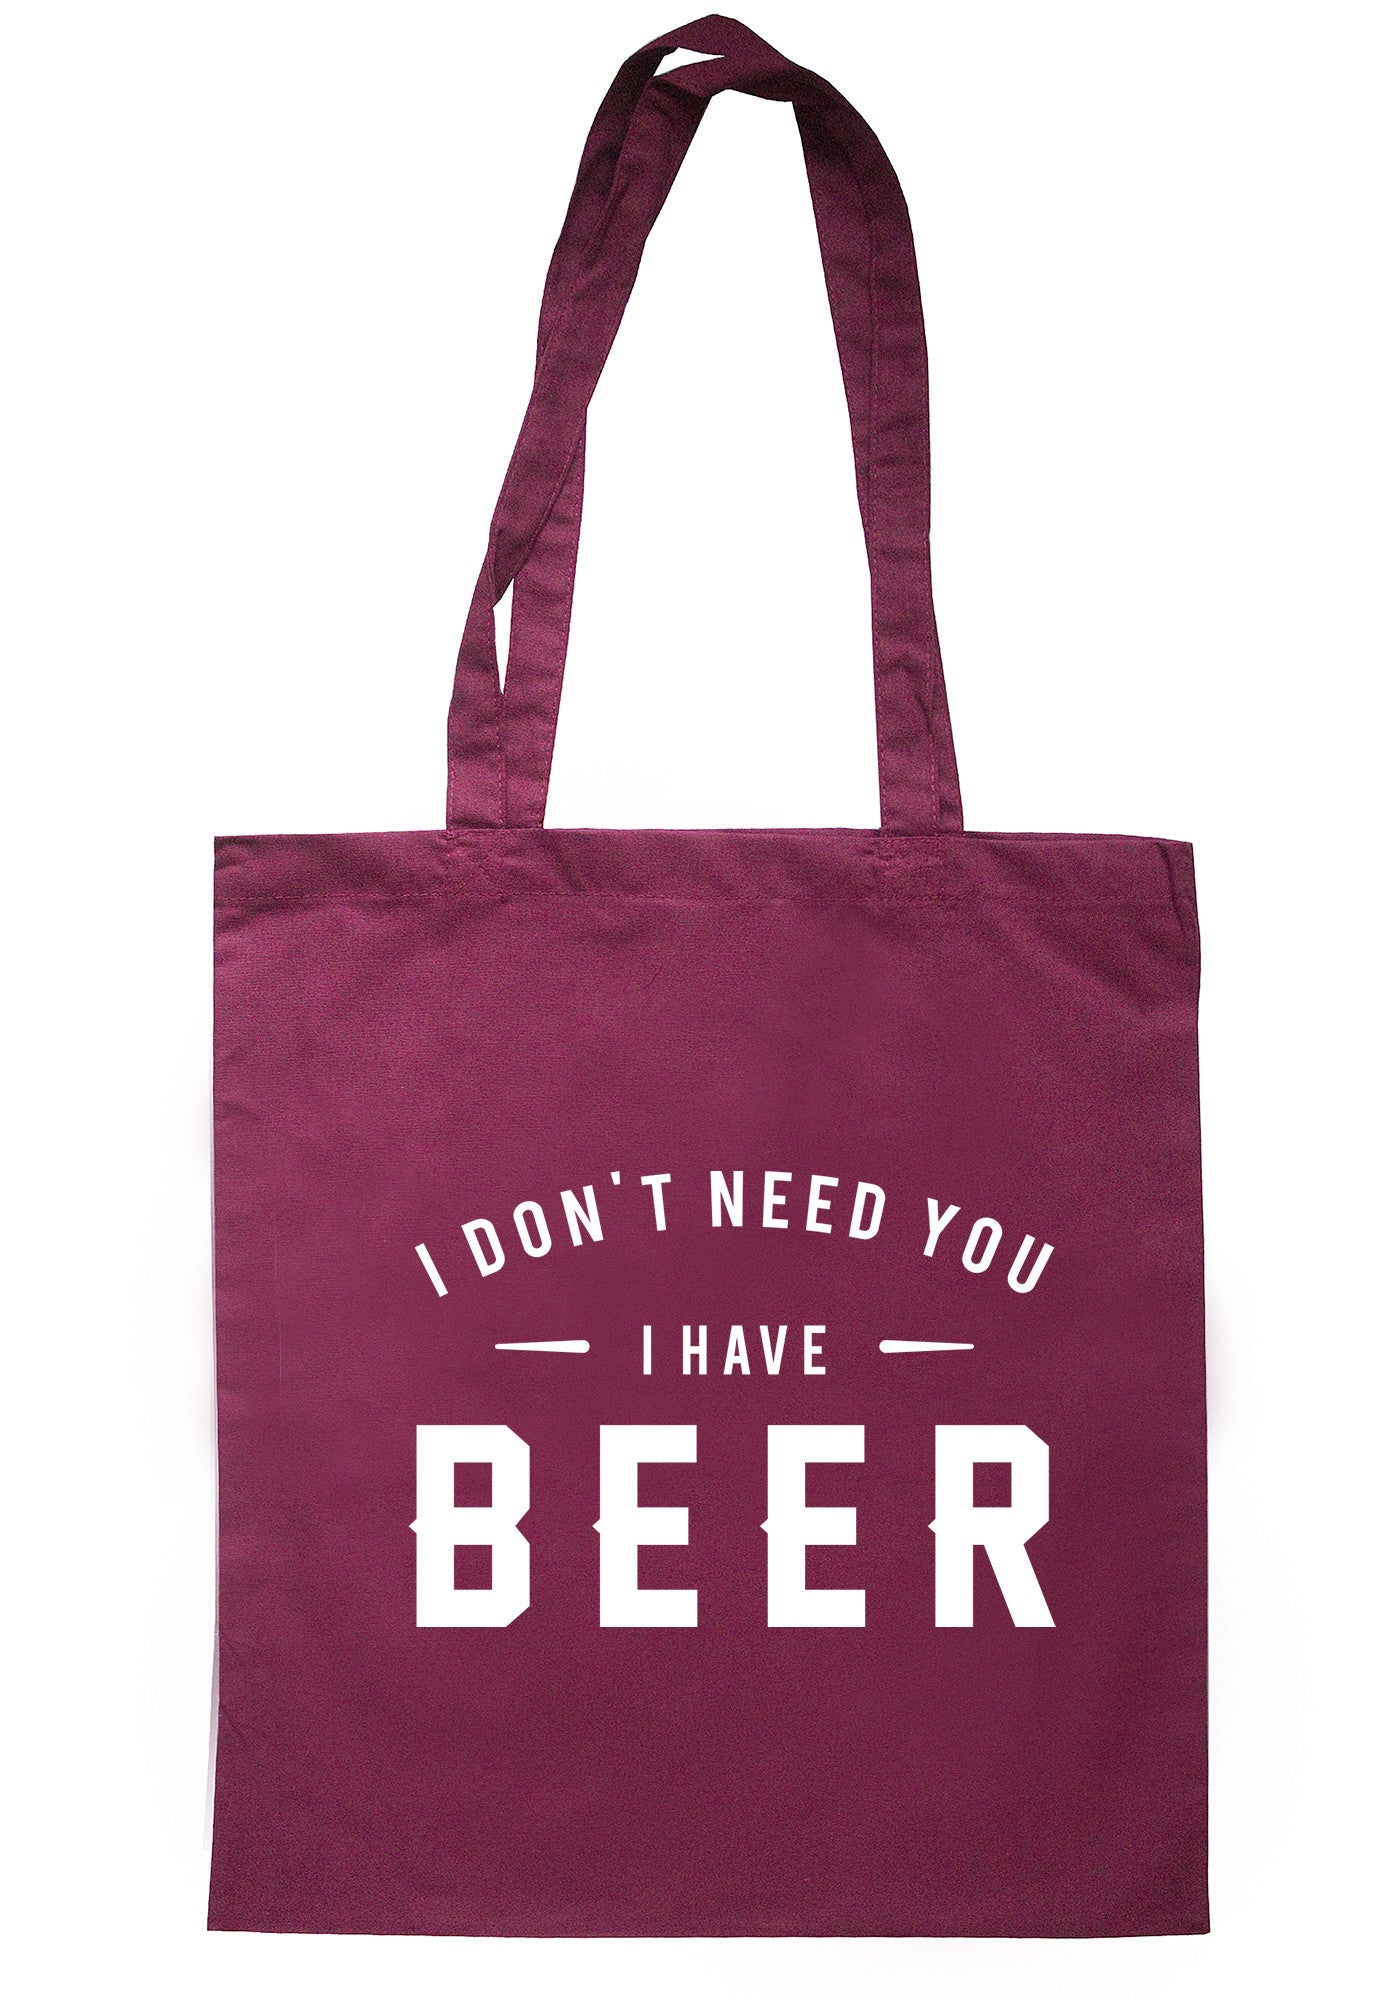 I Don't Need You I Have Beer Tote Bag TB0590 - Illustrated Identity Ltd.